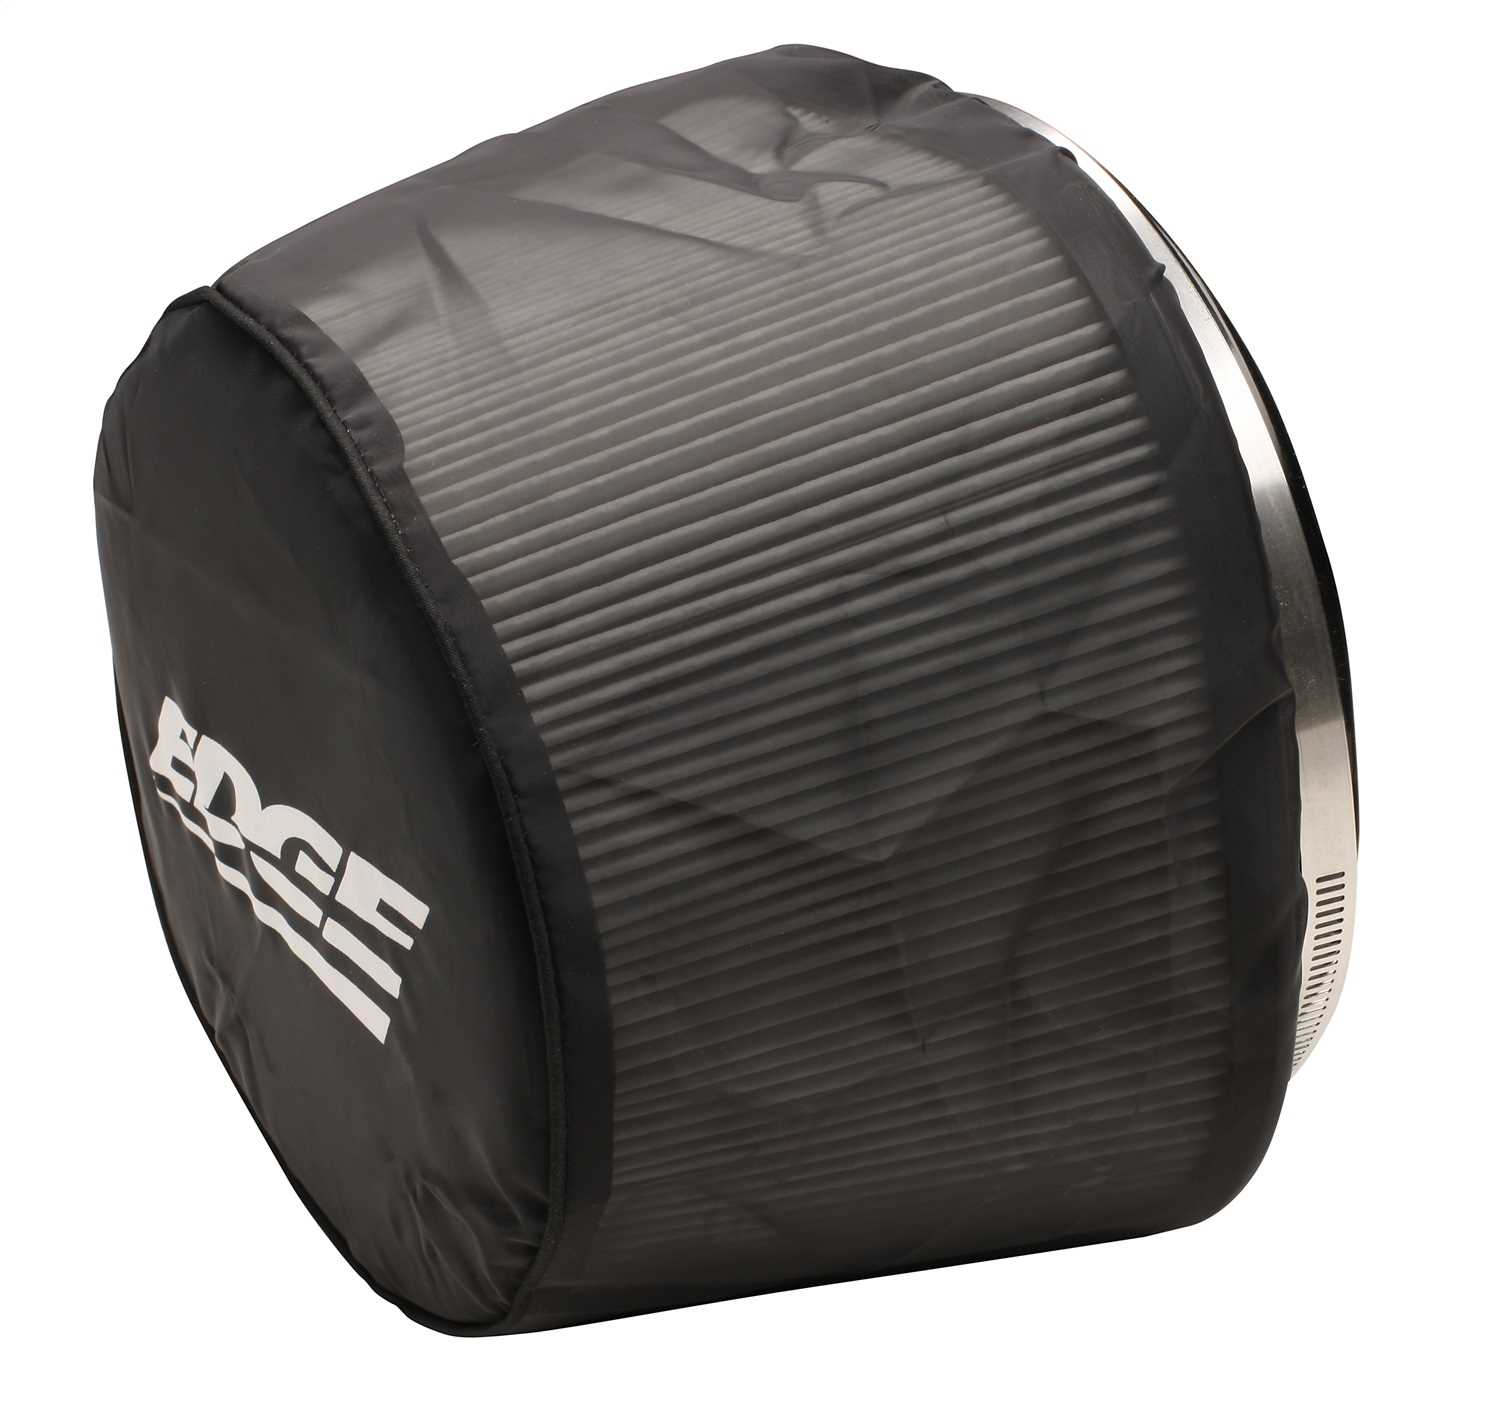 88103 Edge Products Jammer Filter Wrap Covers